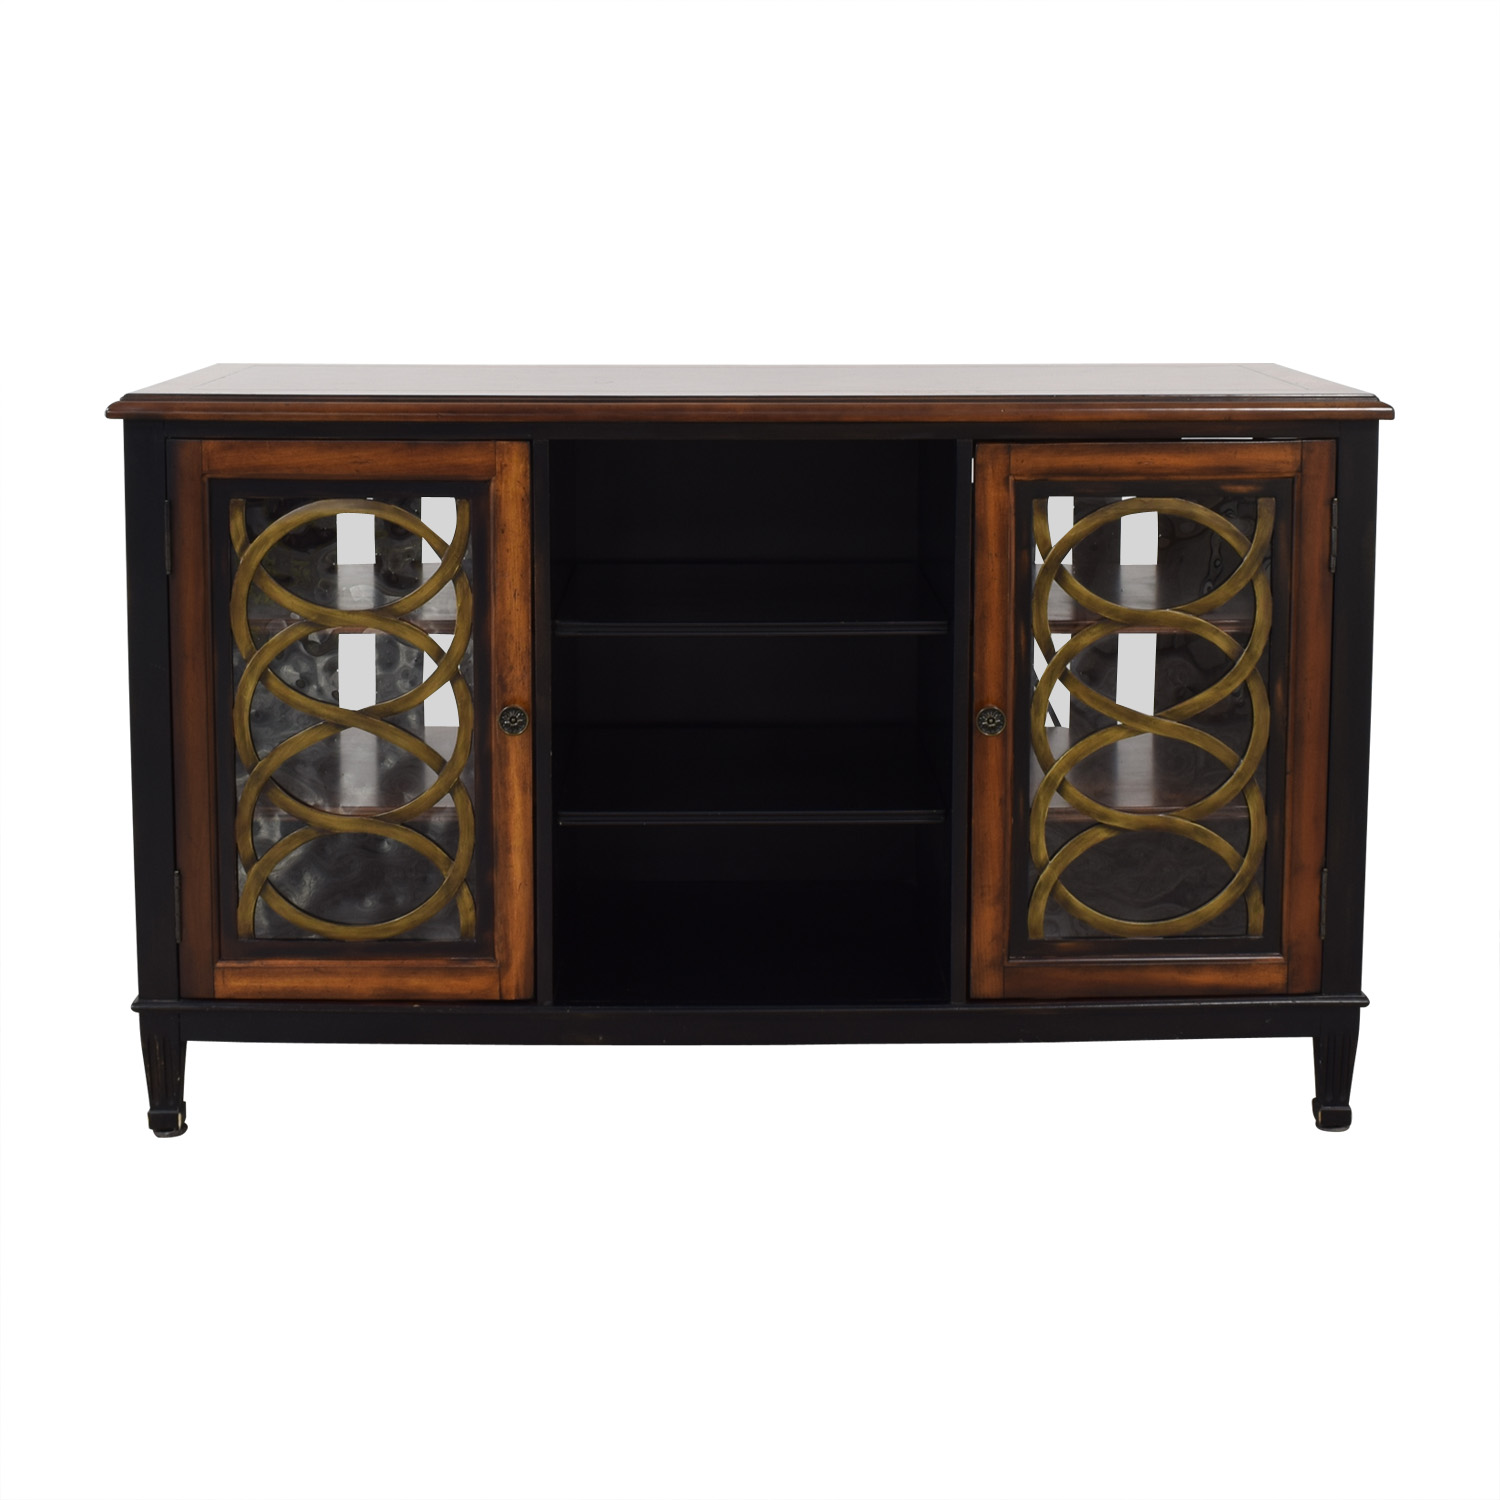 Hooker Furniture Hooker Furniture Entertainment Console price